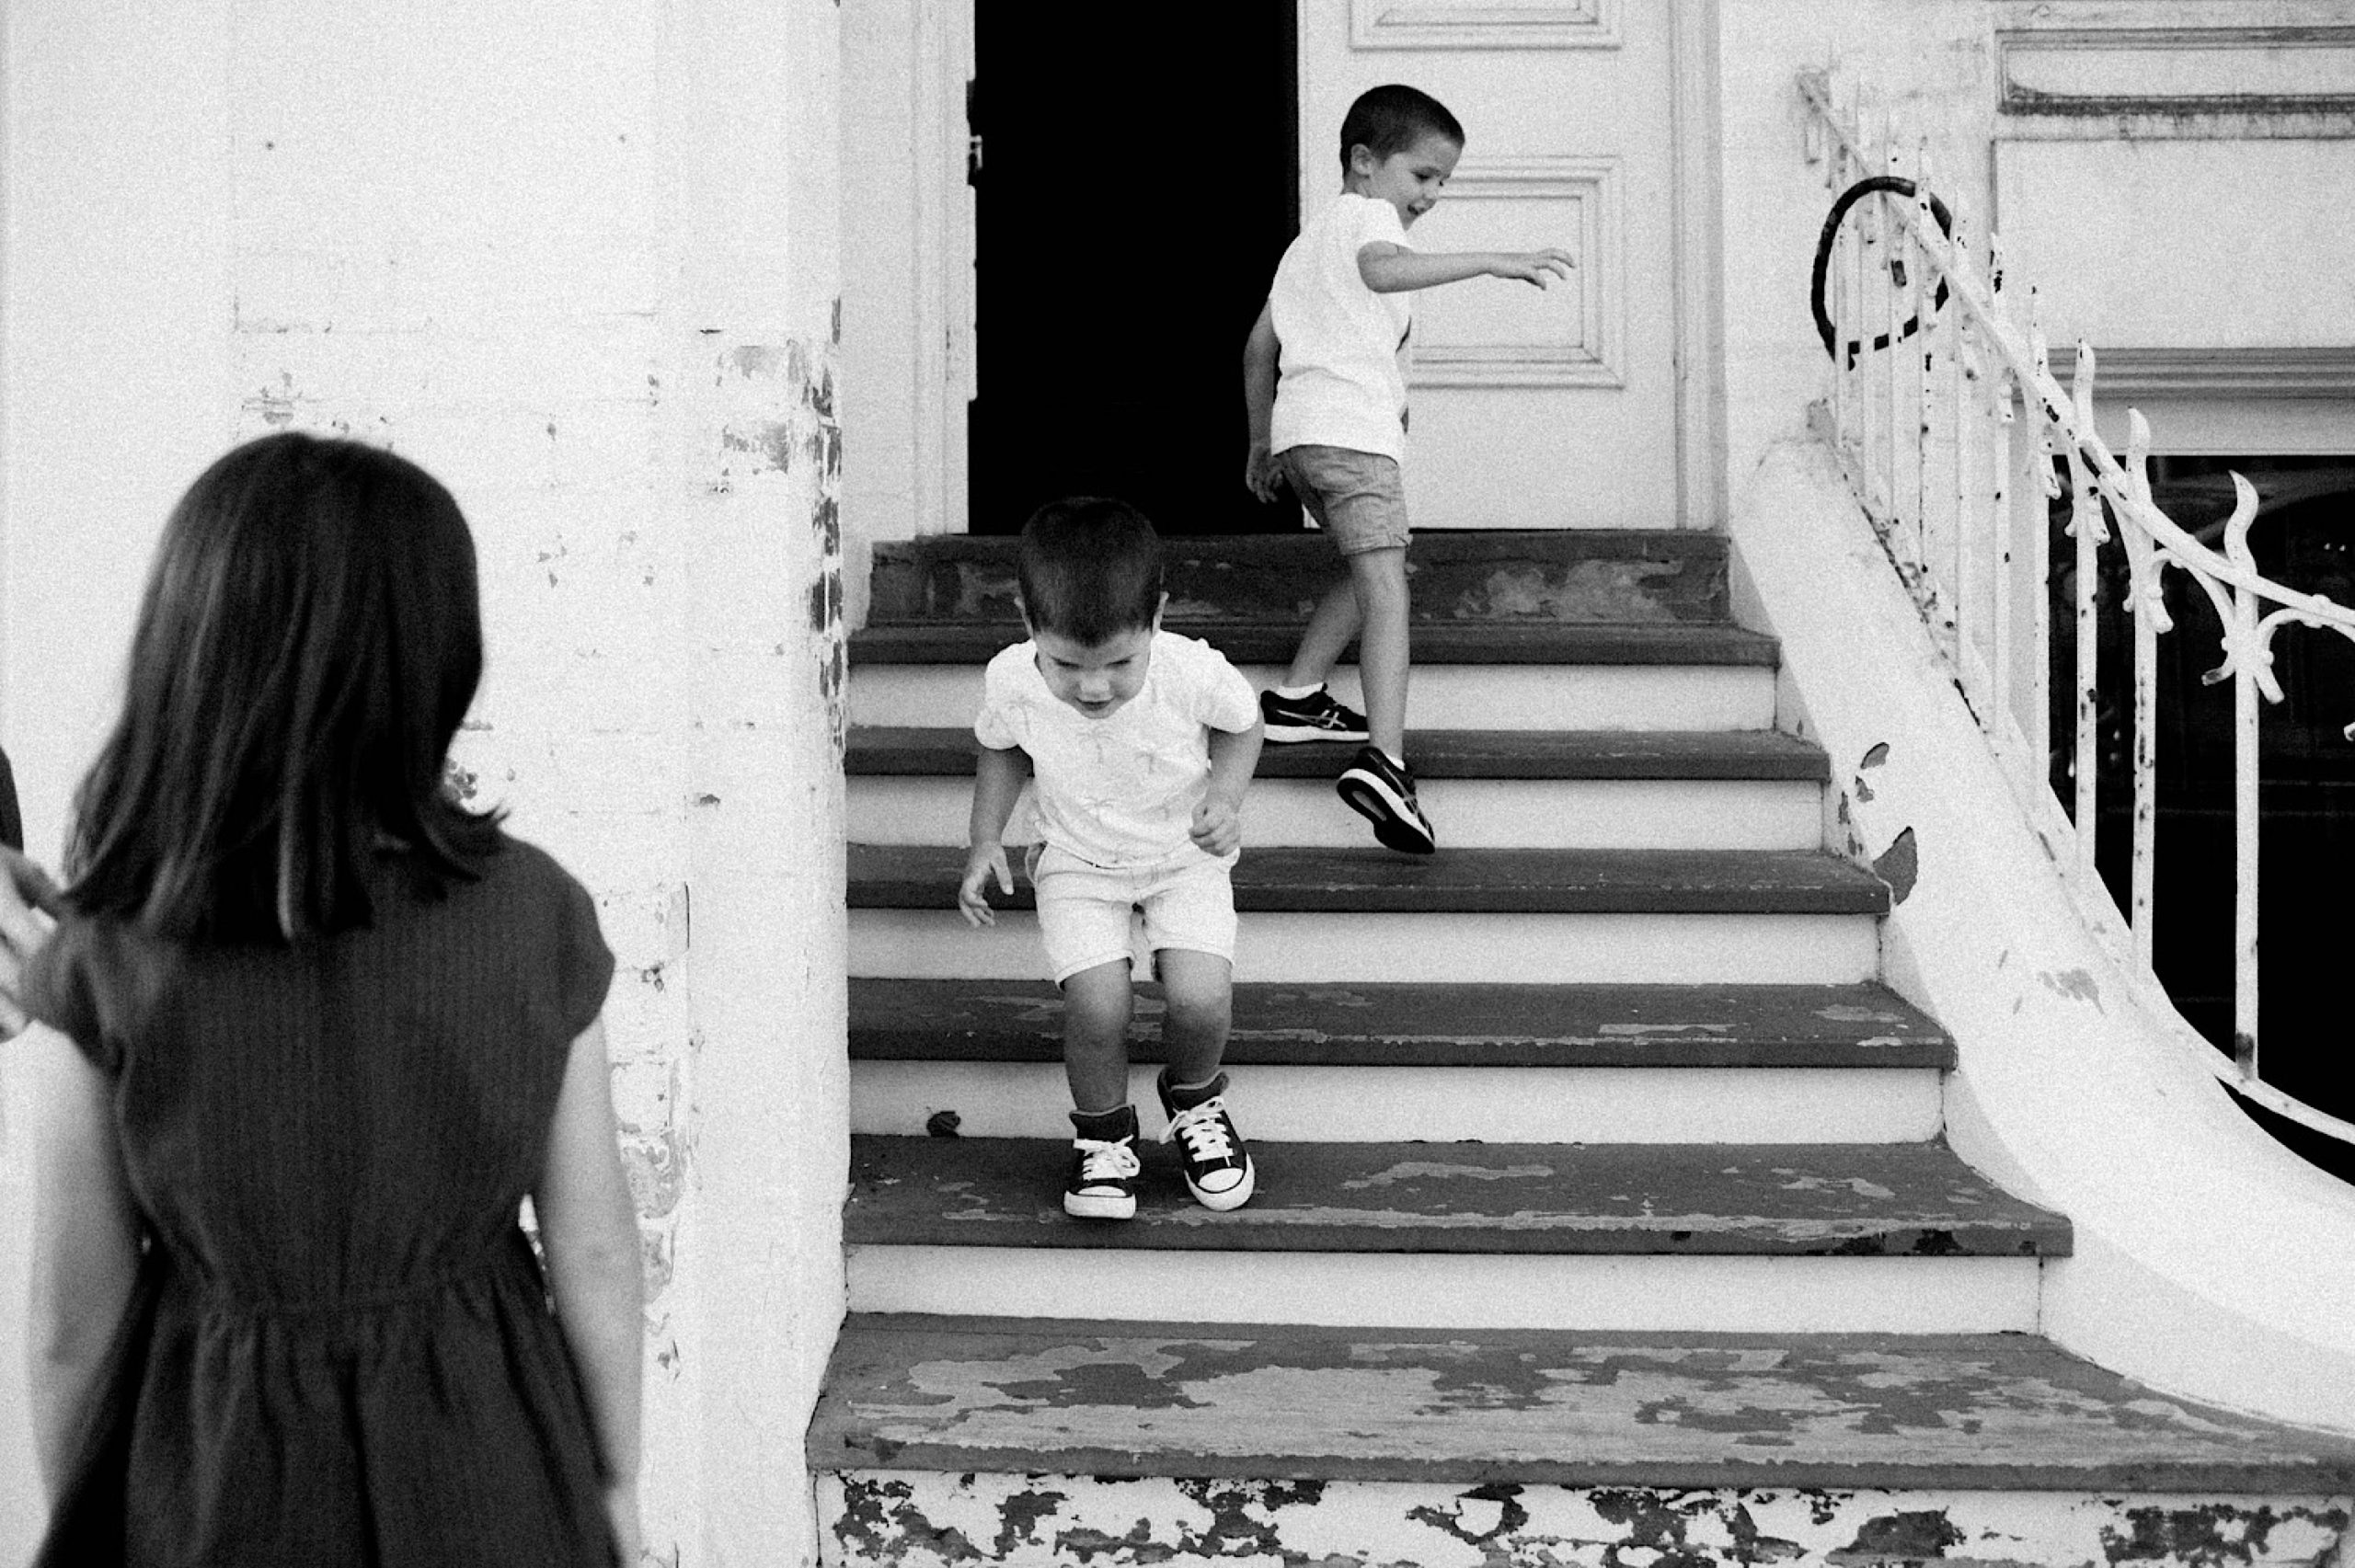 A black and white wide family photo or two boys playing on stairs. Their sister stands on the left side of the photo watching on.